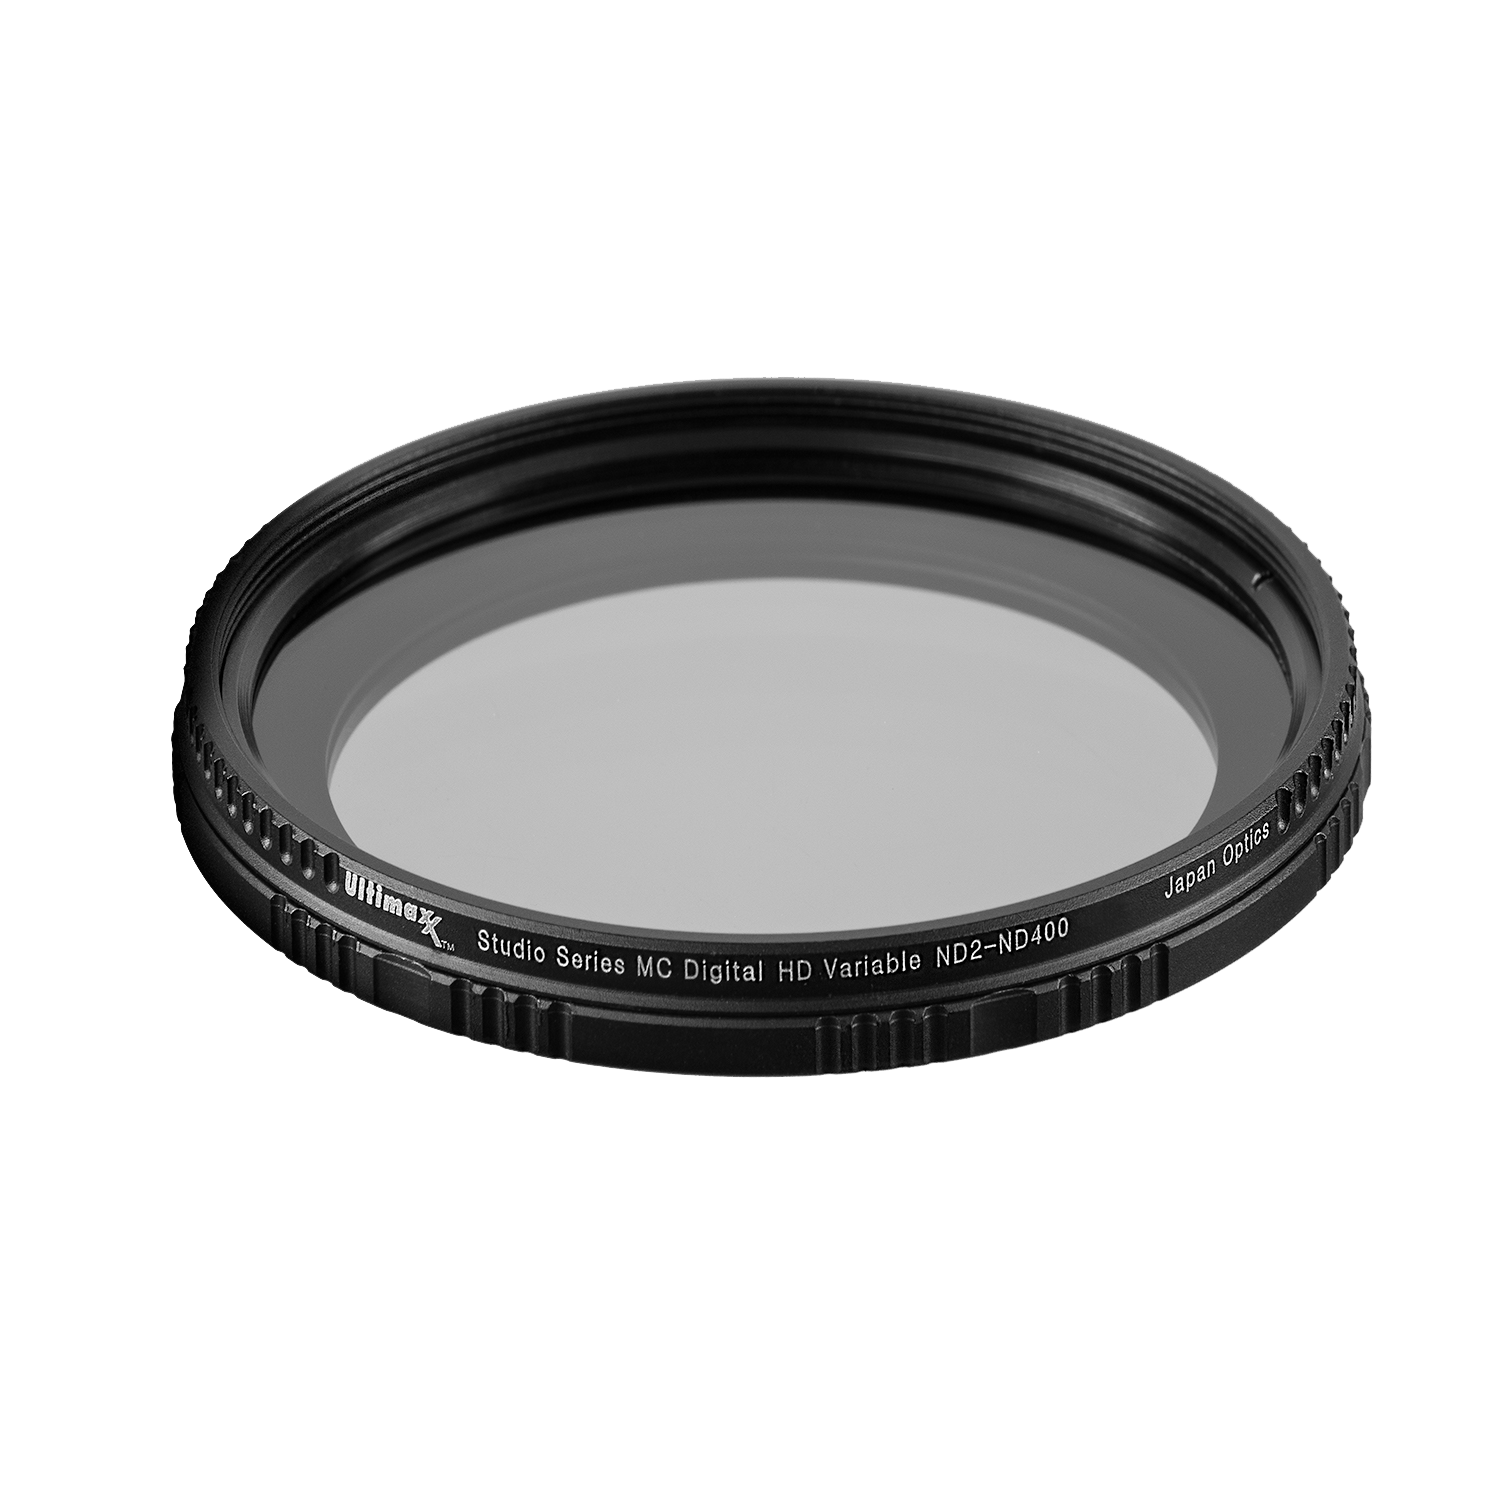 Ultimaxx 72mm VARIABLE NEUTRAL DENSITY FILTER ND2-ND400